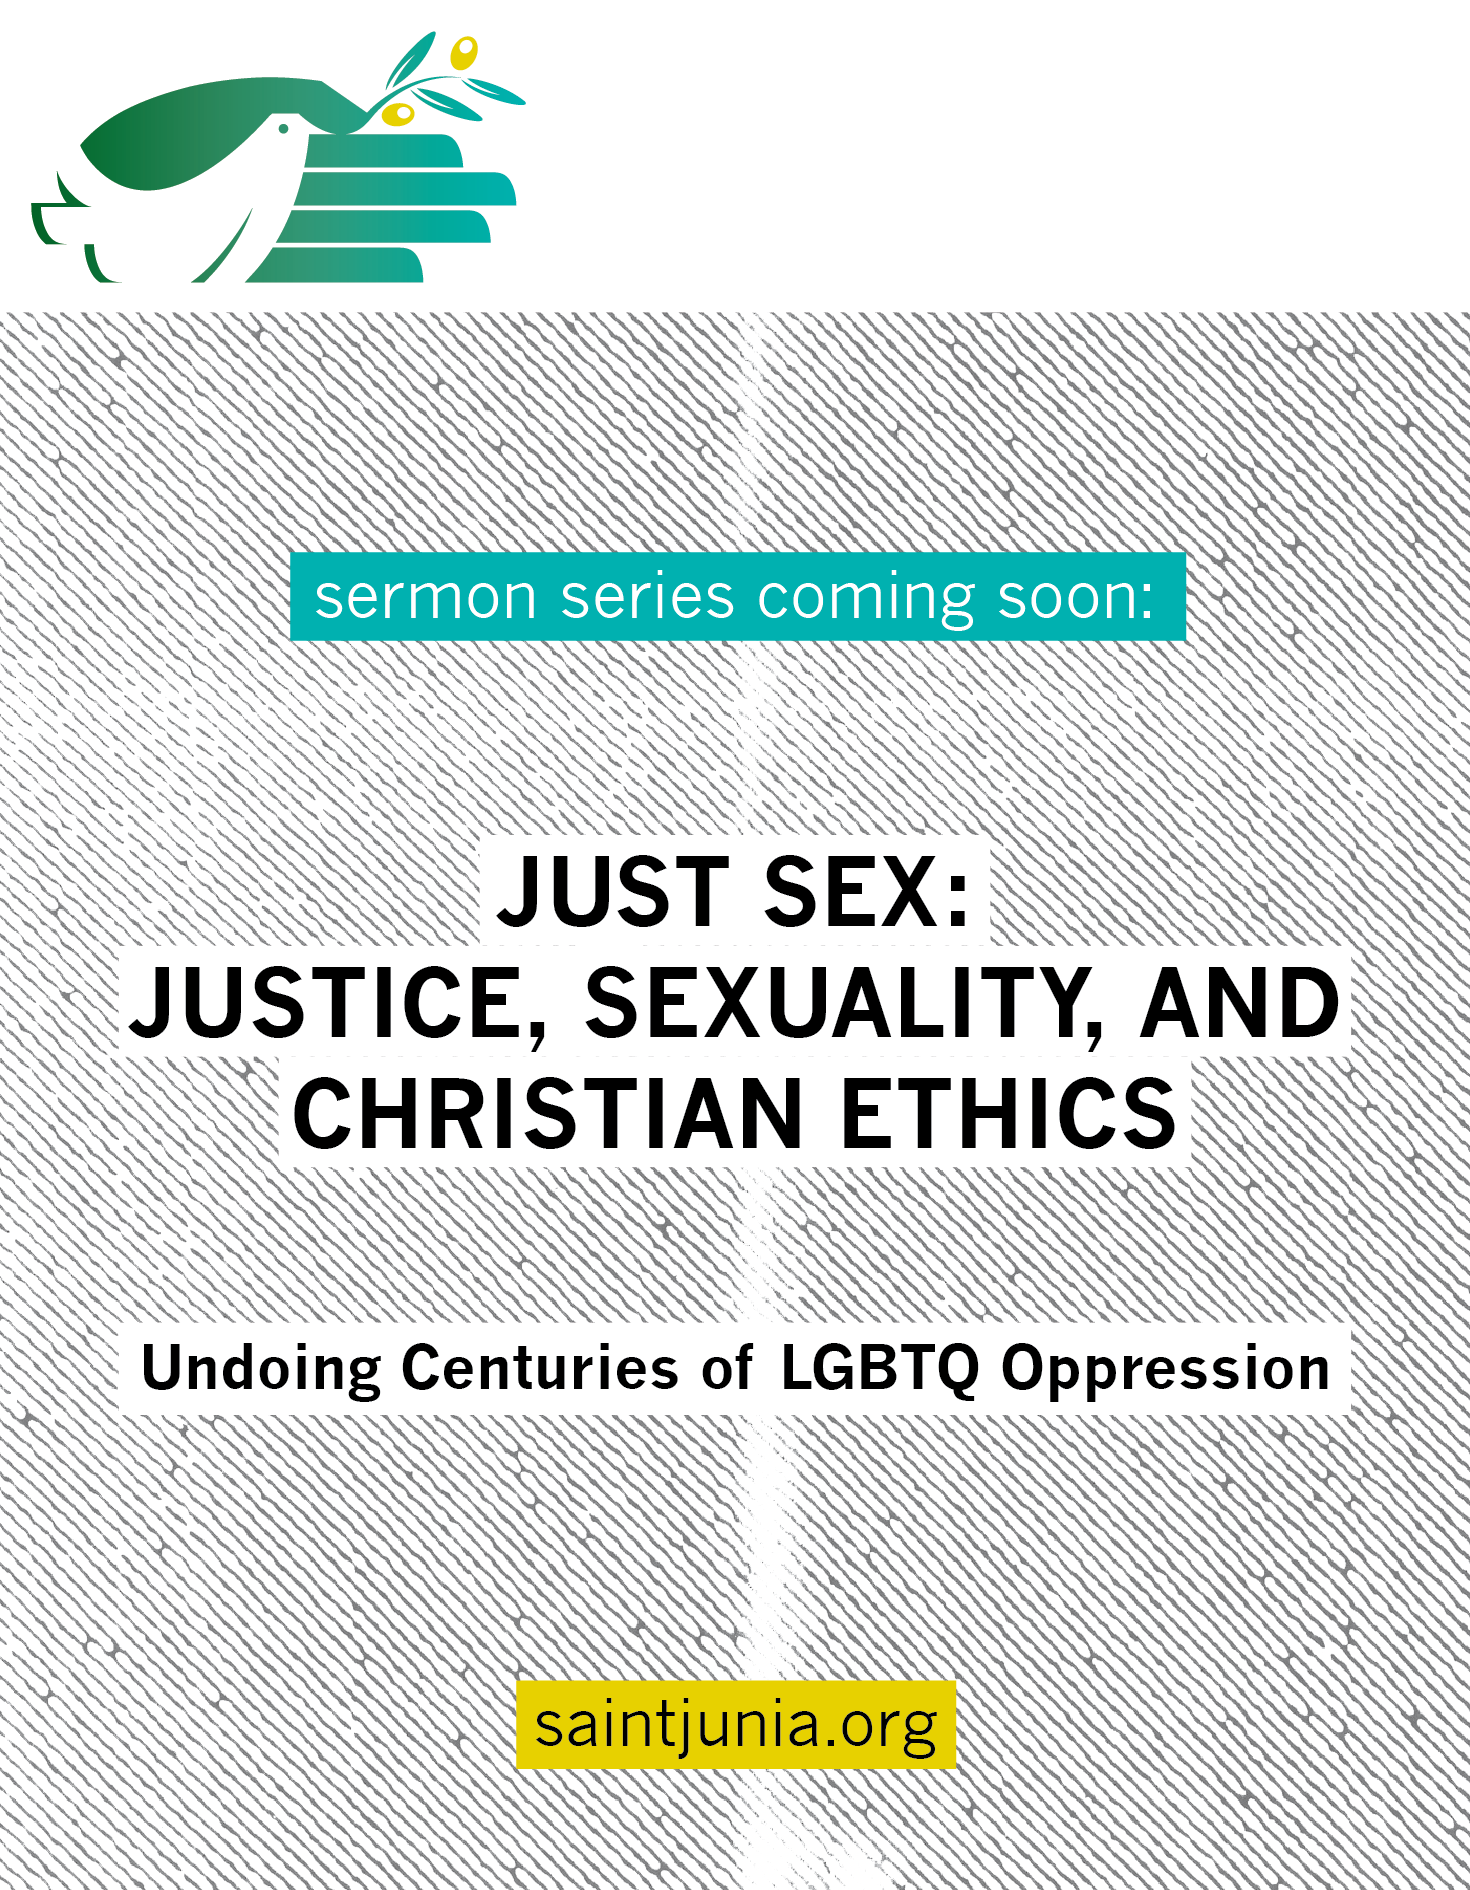 Universal house of justice letter on homosexuality and christianity